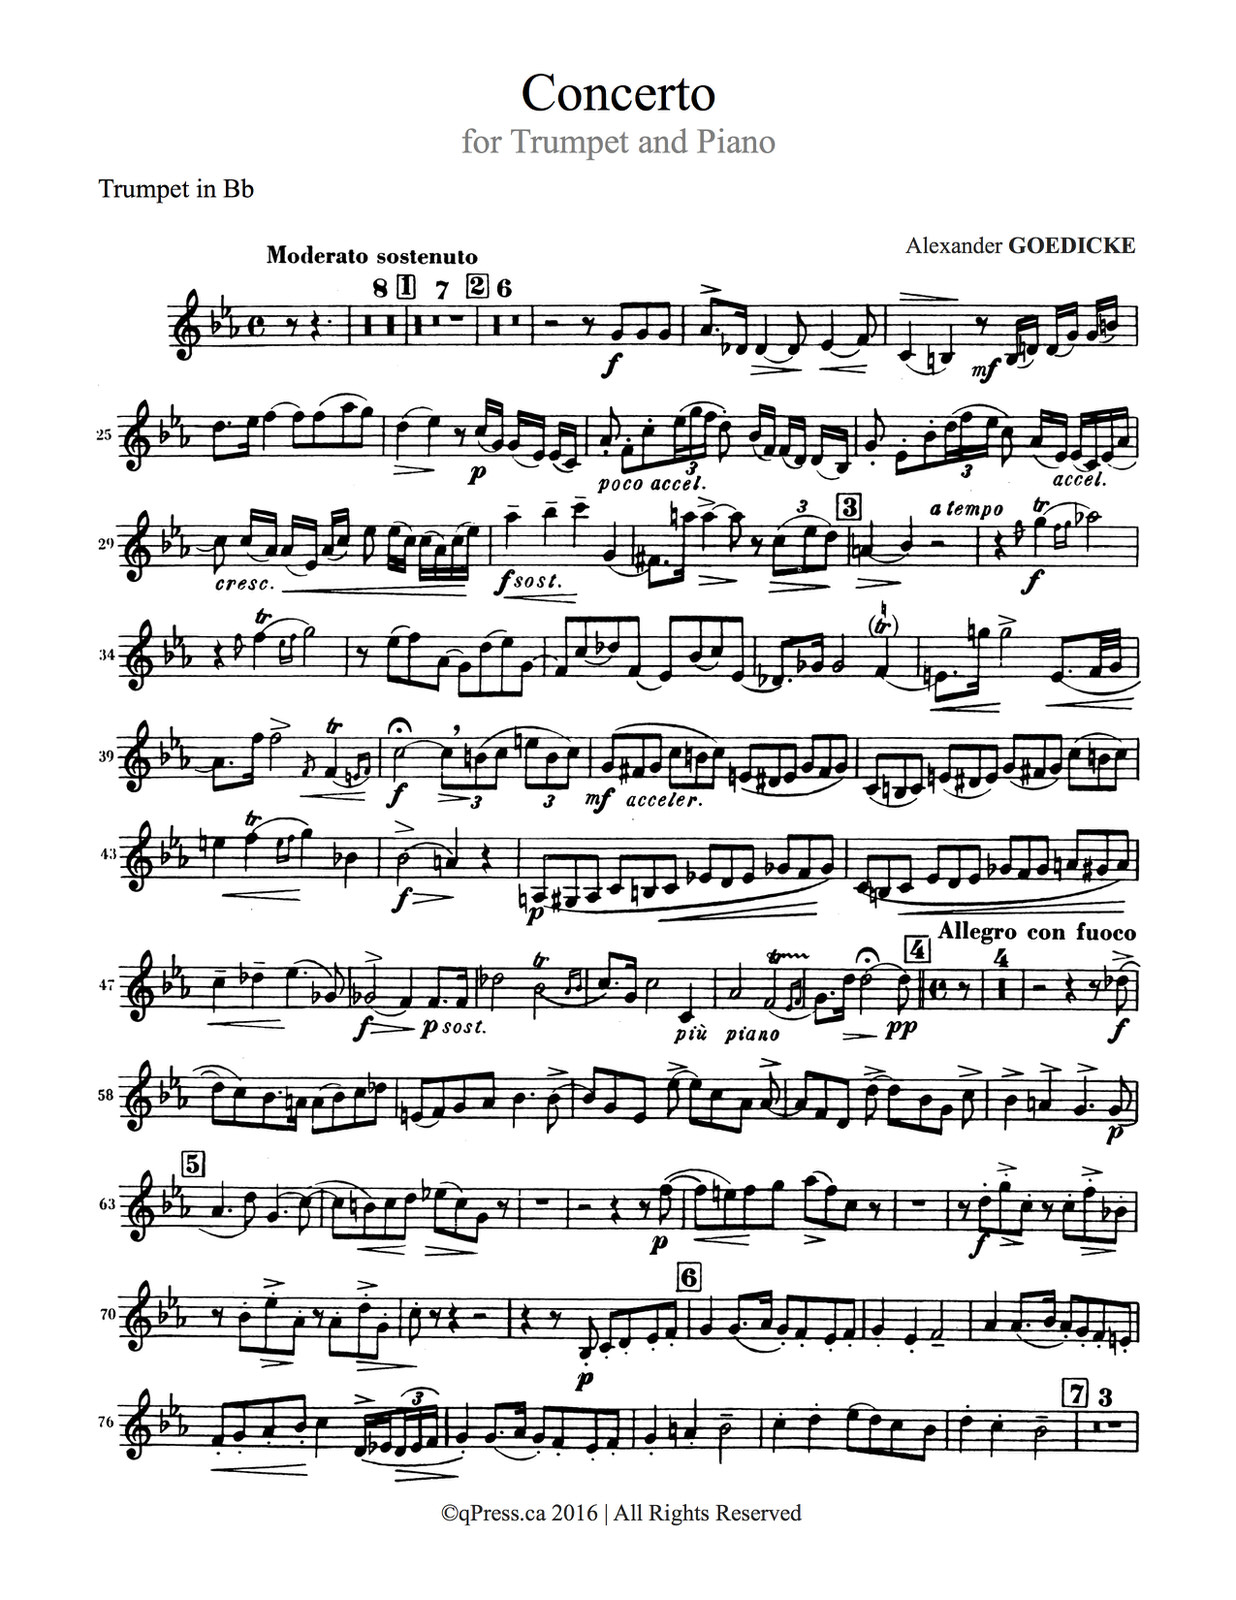 Goedicke Concerto for Trumpet and Piano by Goedicke, Alexander | qPress